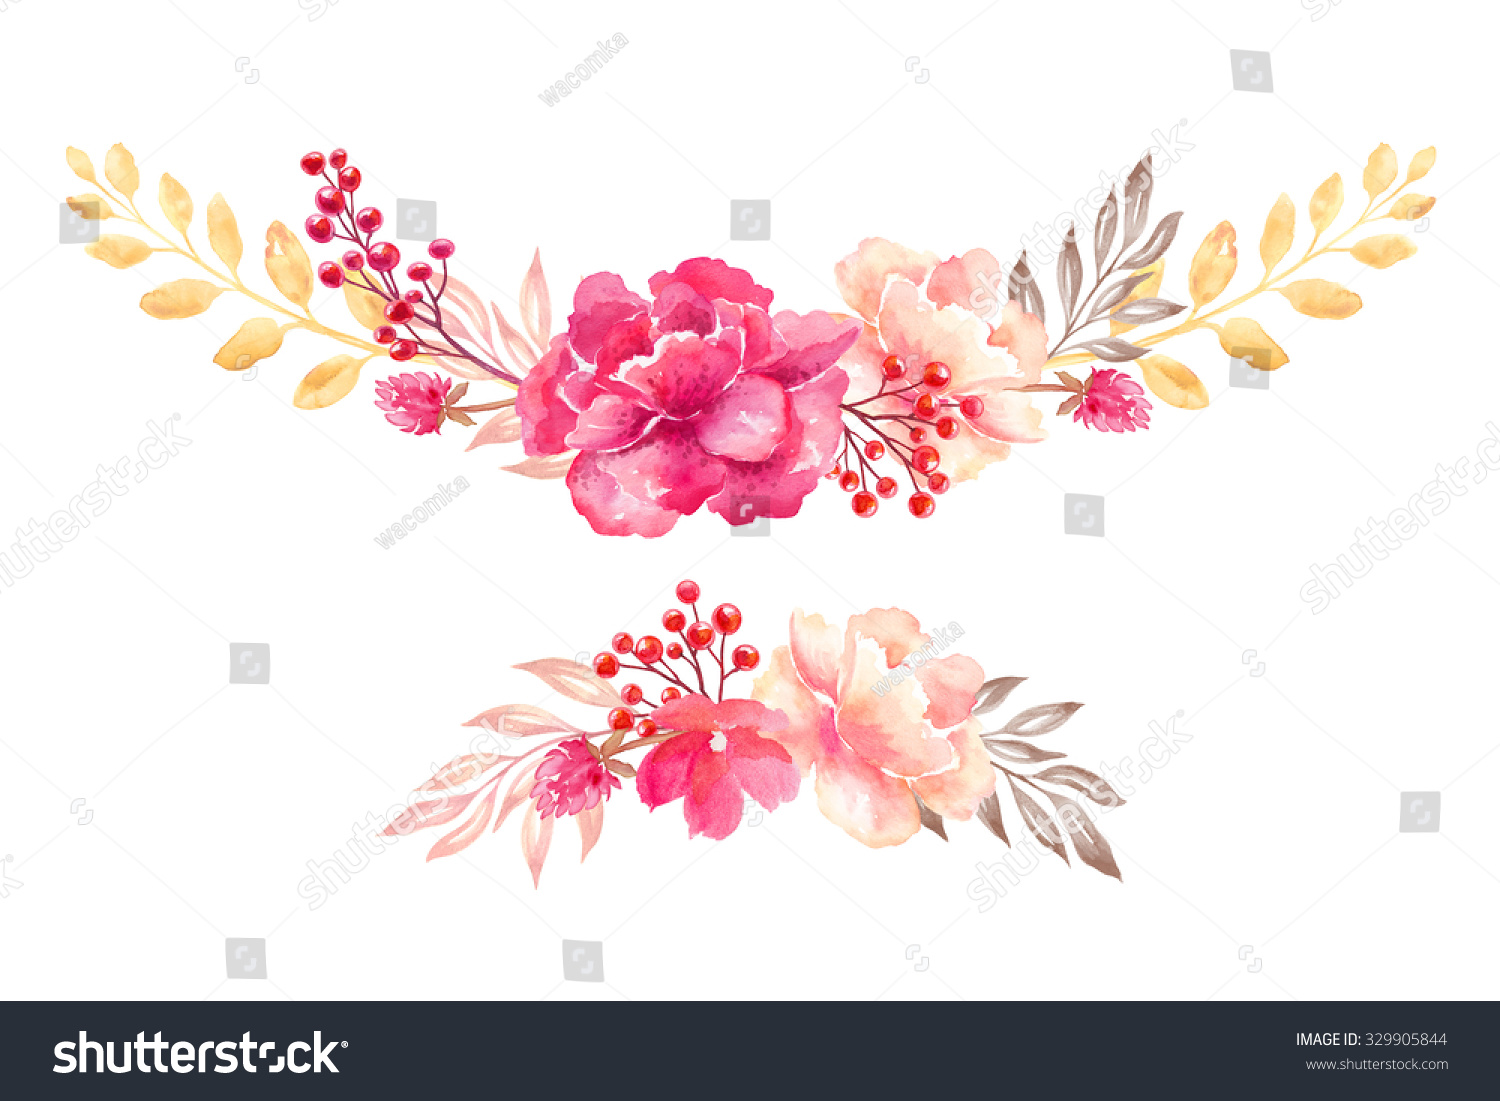 Royalty free stock illustration of floral arrangement flowers floral arrangement flowers bouquet design elements watercolor clip art isolated on white background izmirmasajfo